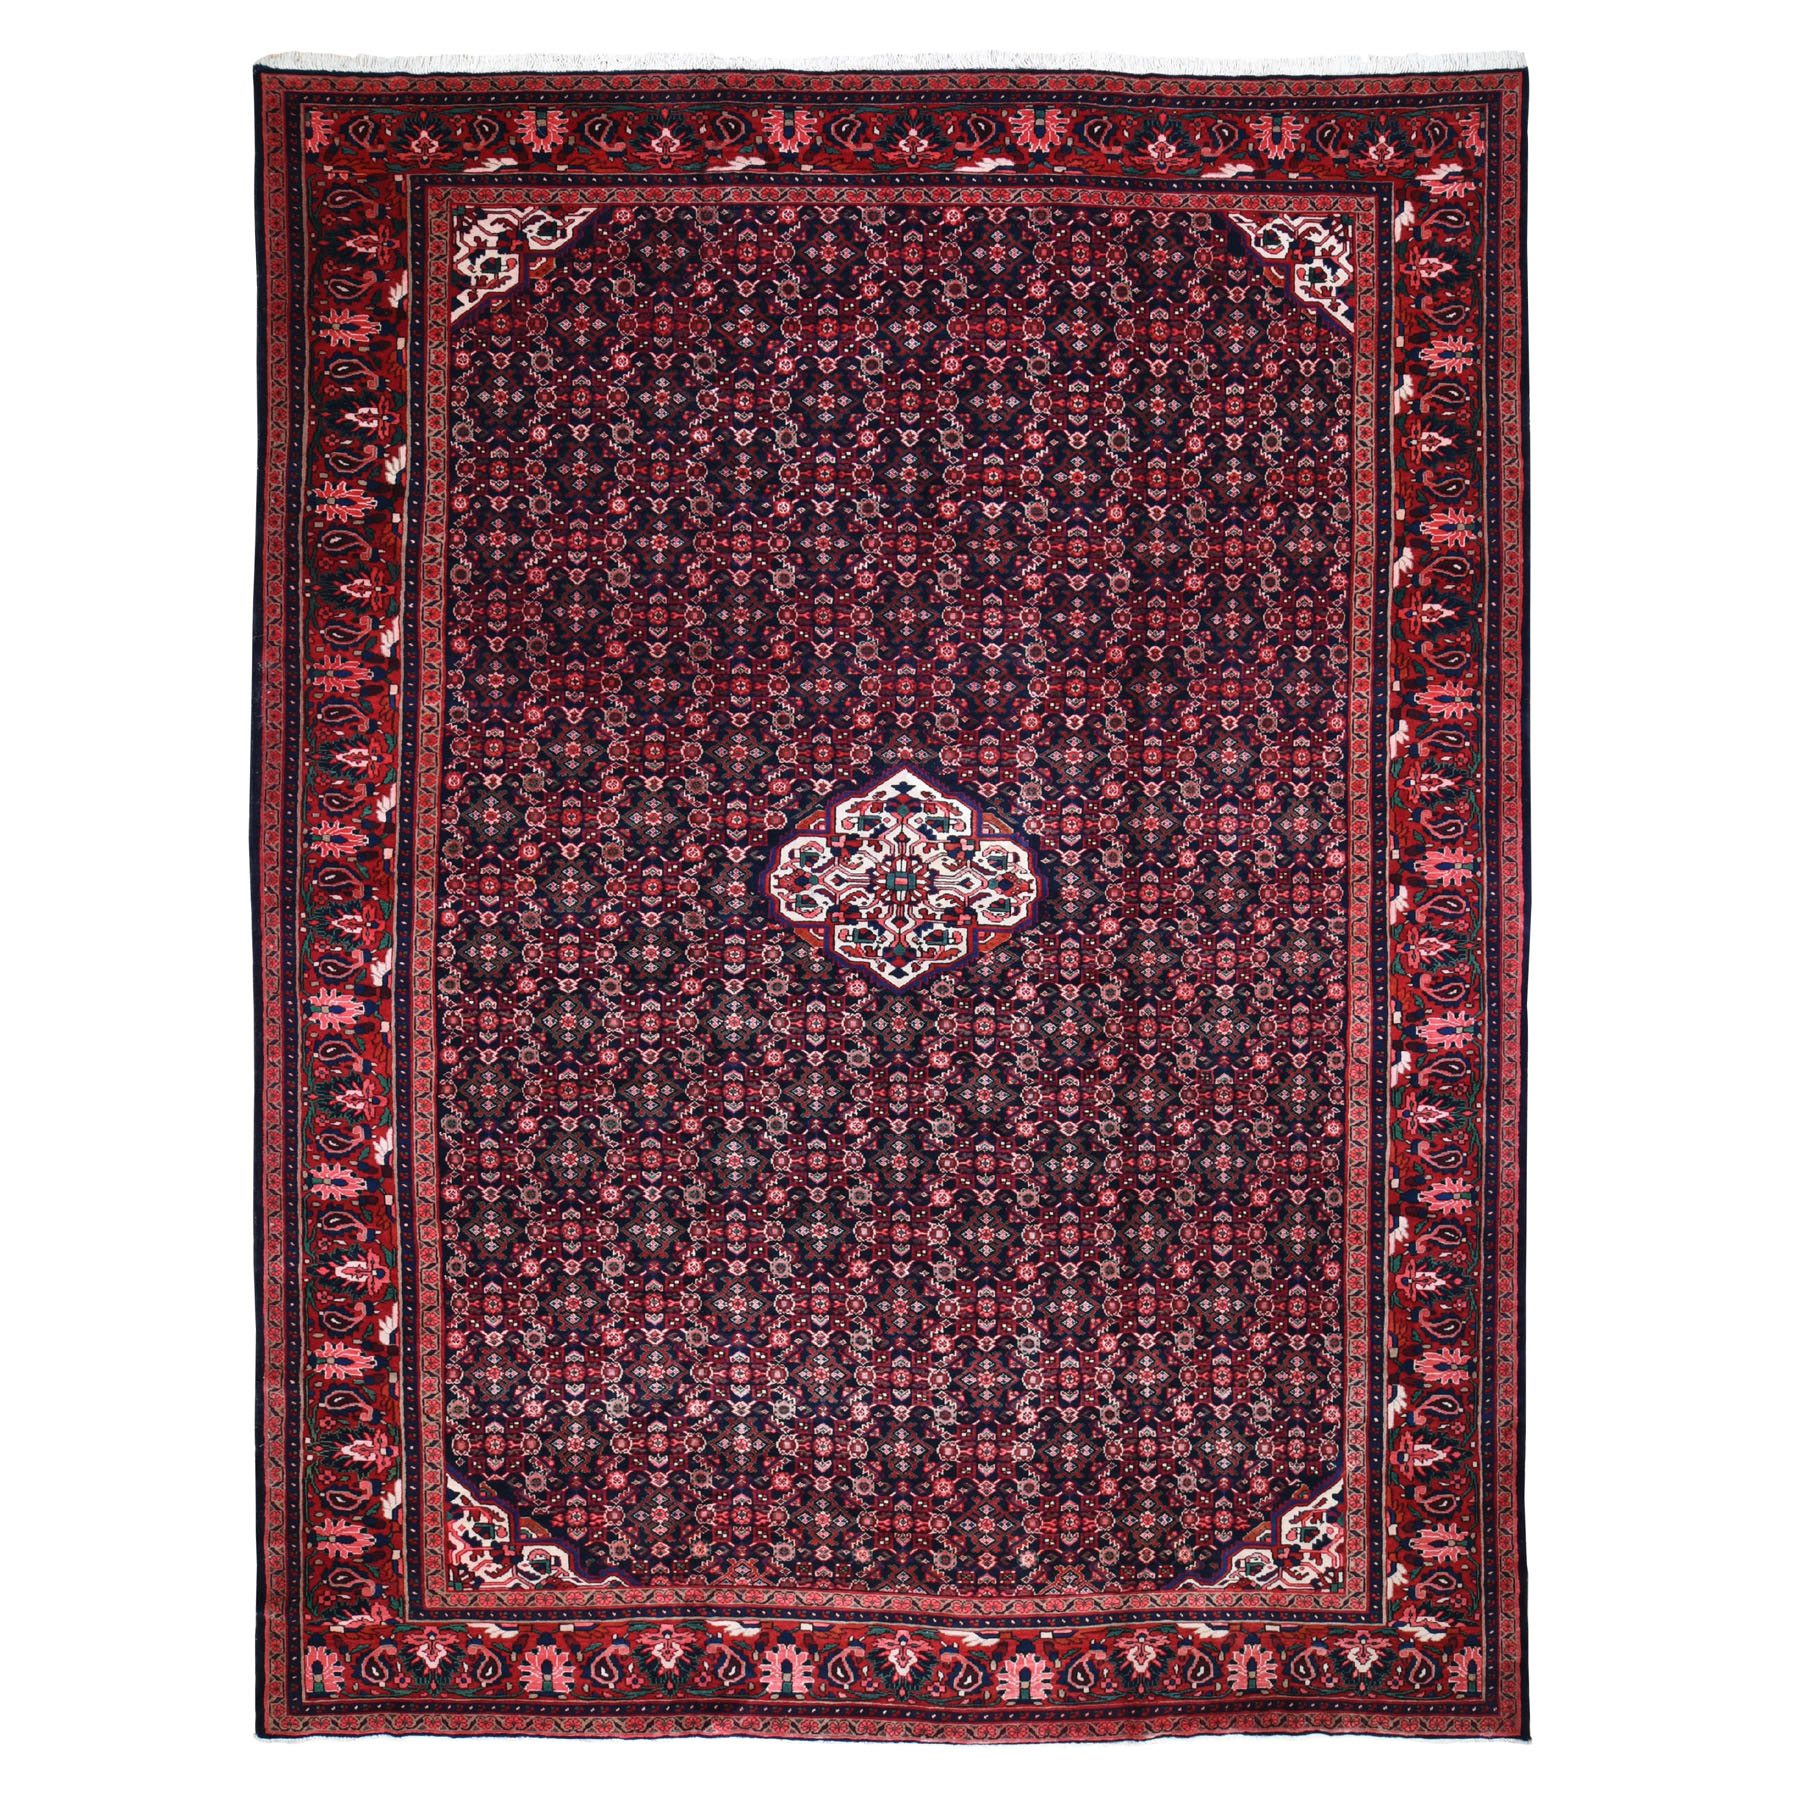 "10'7""x14' Red New Persian Mahal Fish Design Denser Weave Pure Wool Hand Woven Oriental Rug"